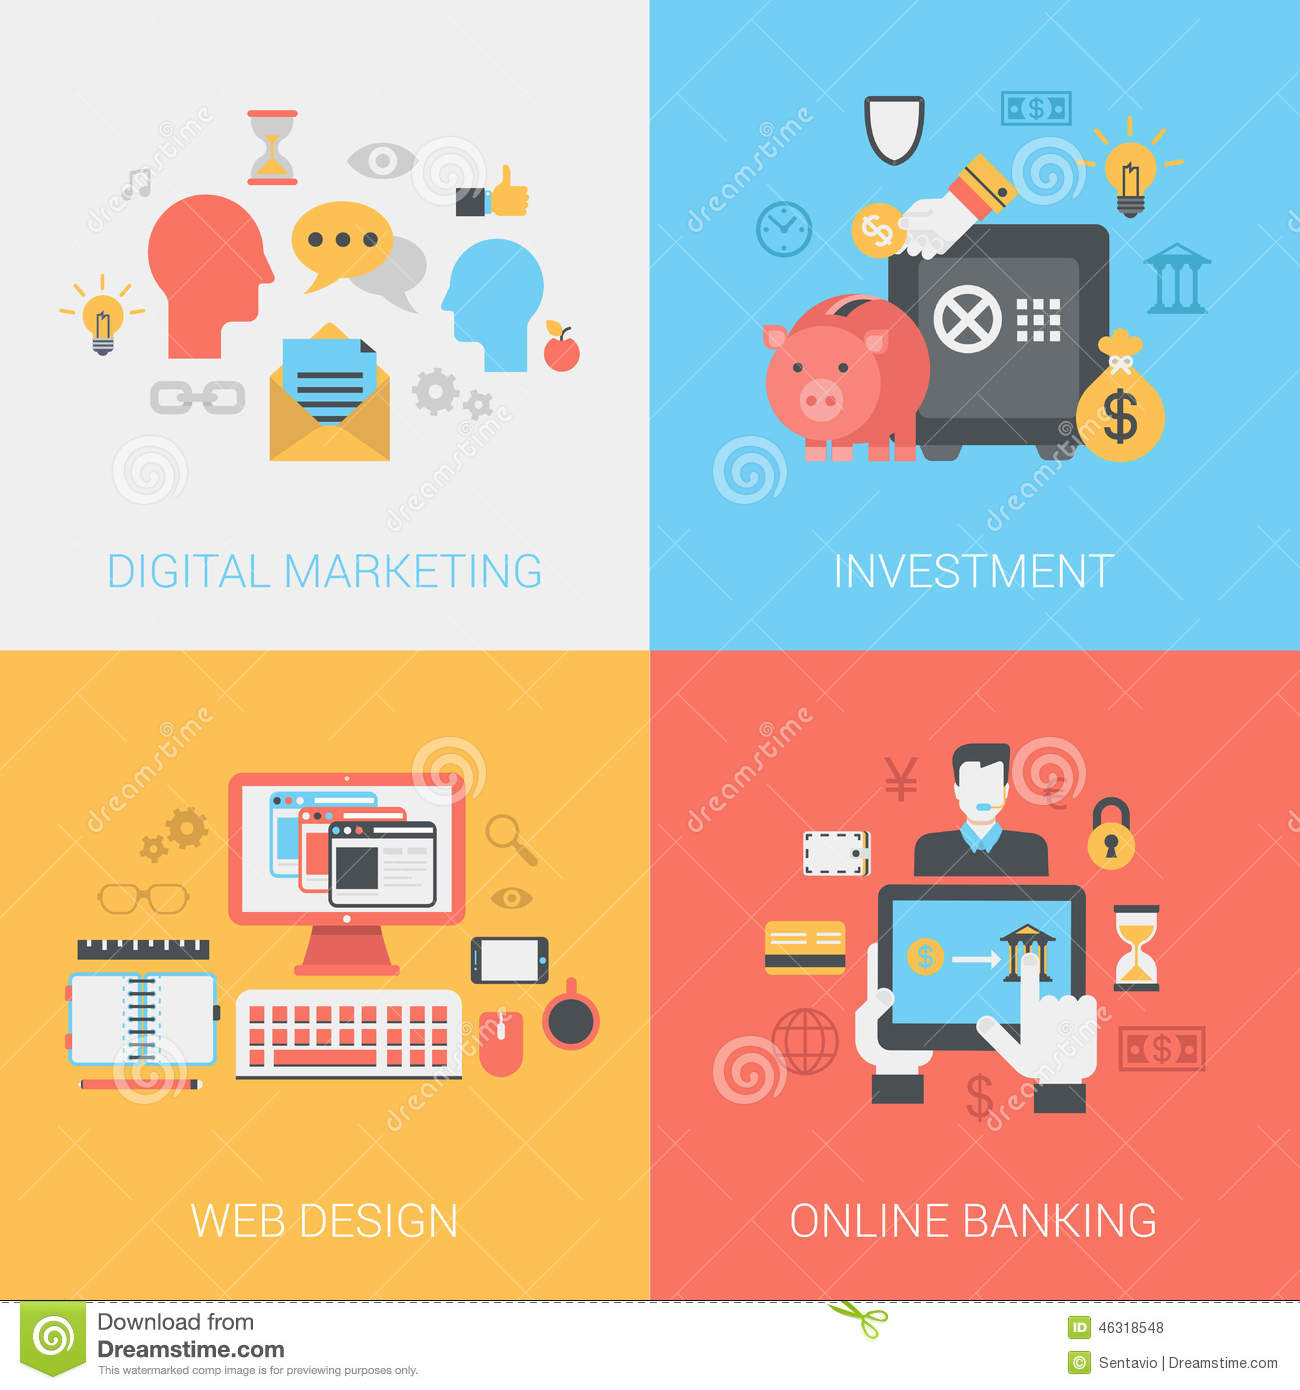 Digital marketing investments web design online banking for Make a blueprint free online